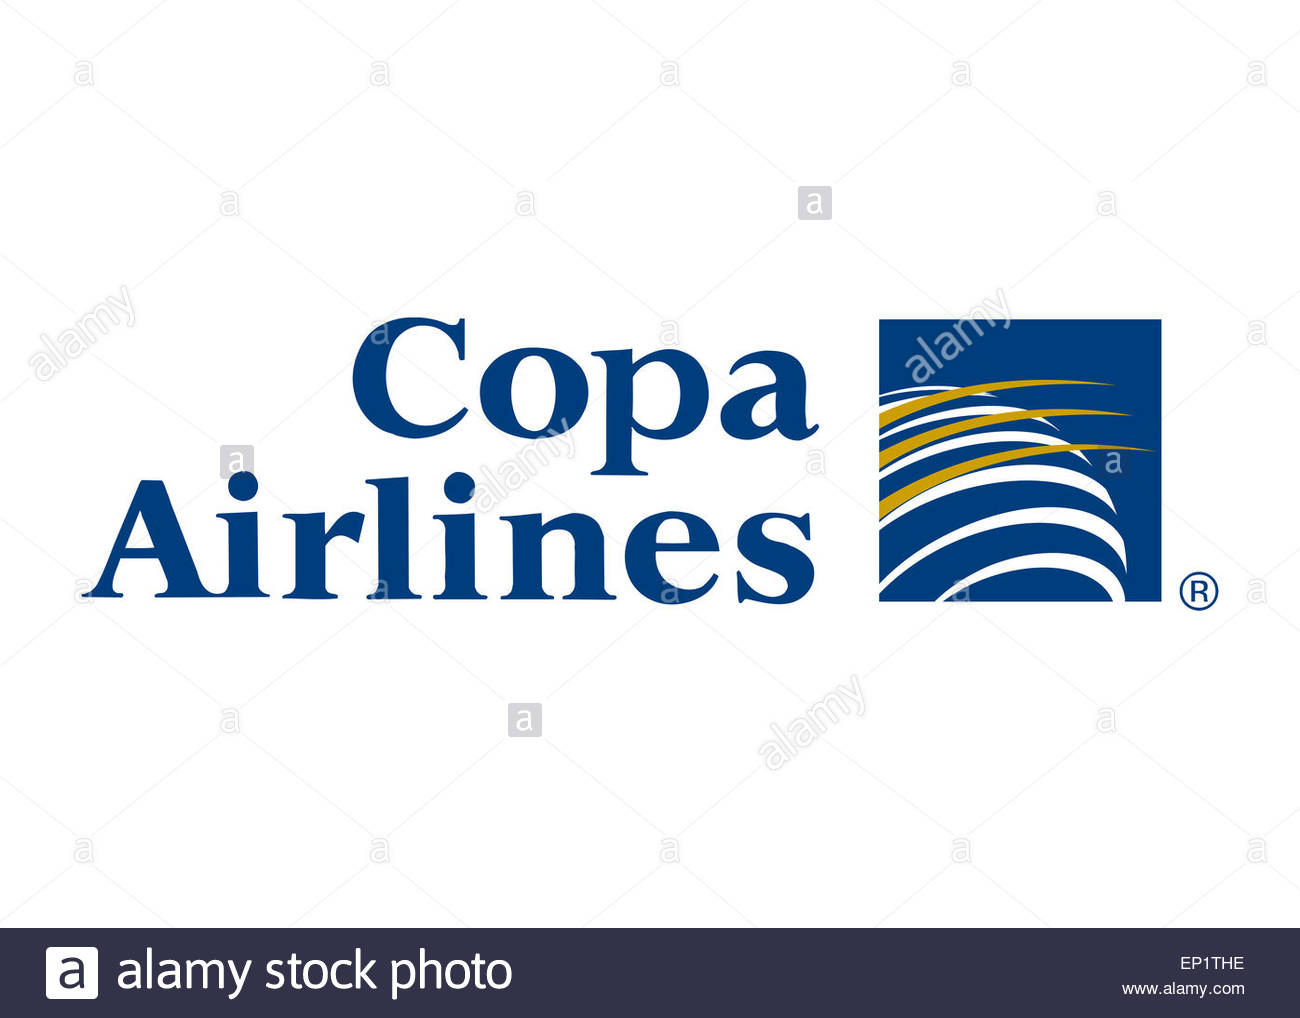 Copa Airlines logo icon flag symbol emblem Stock Photo